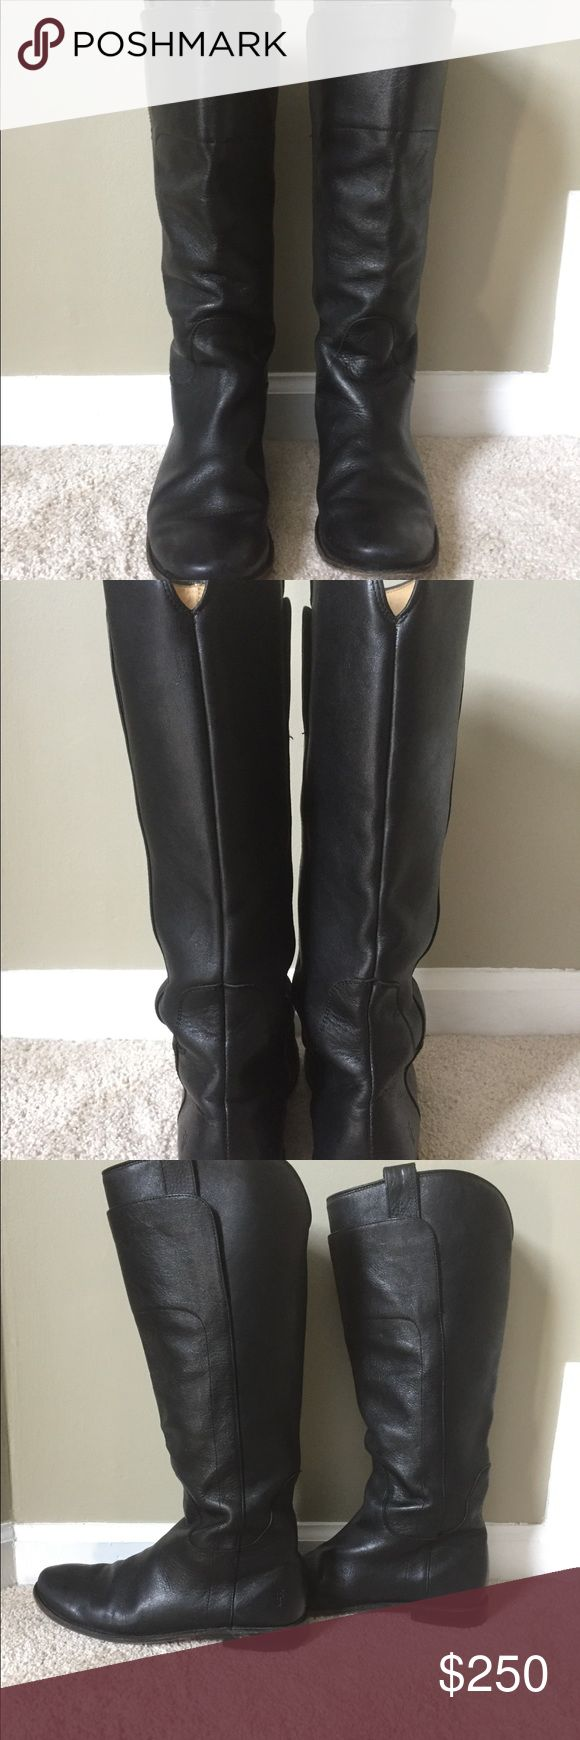 Frye Paige Tall Riding Boot Black 8.5 Like new Authentic Frye Boots! Women's 8.5 black. Worn maybe a dozen times. Great boots, never worn for riding, just for dinner around town. I just moved to a warm climate and don't find myself wearing them. You won't be disappointed! Frye Shoes Winter & Rain Boots